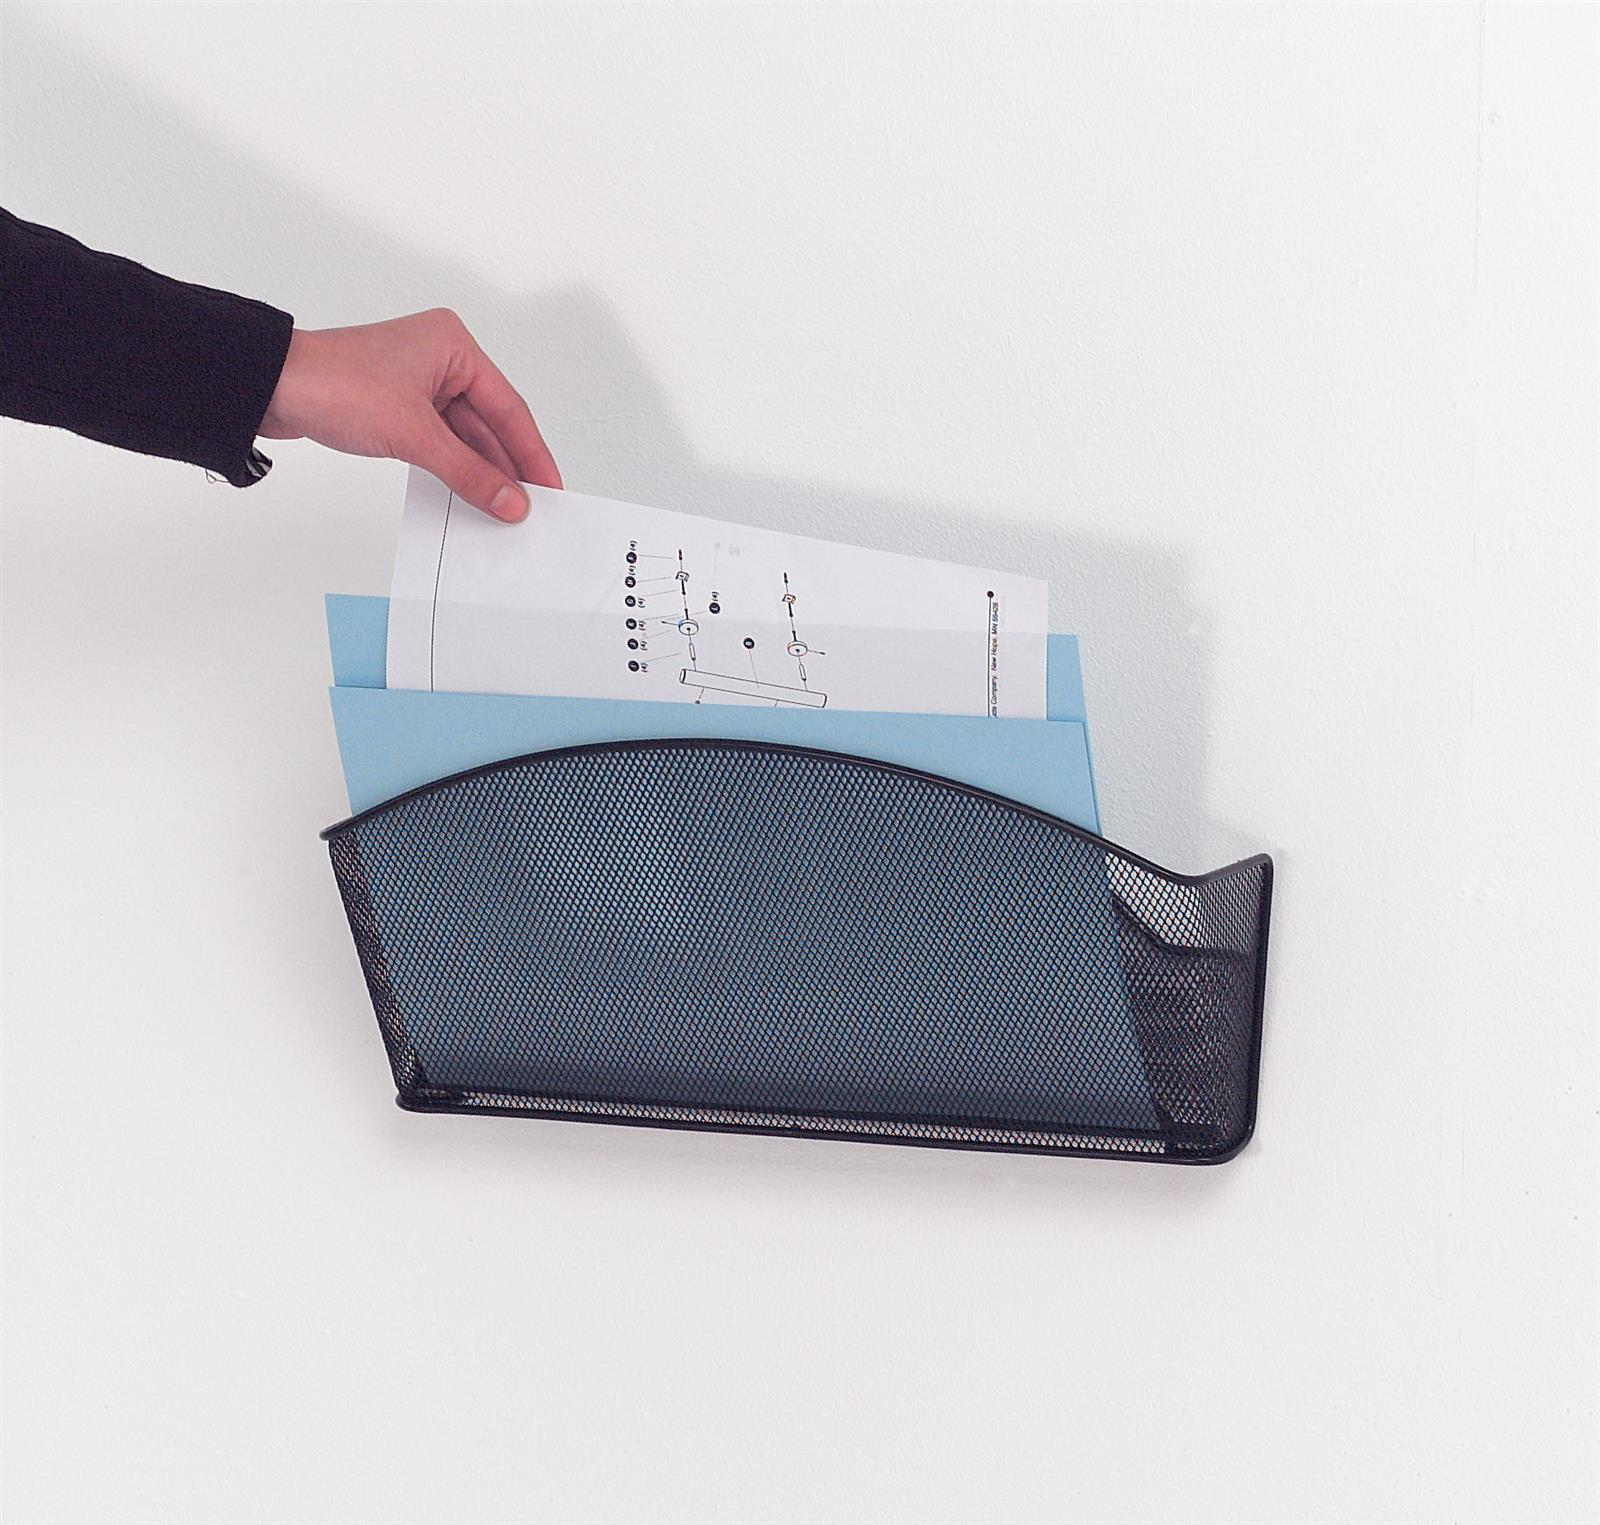 Mesh Wall Mounted Literature Dispensers